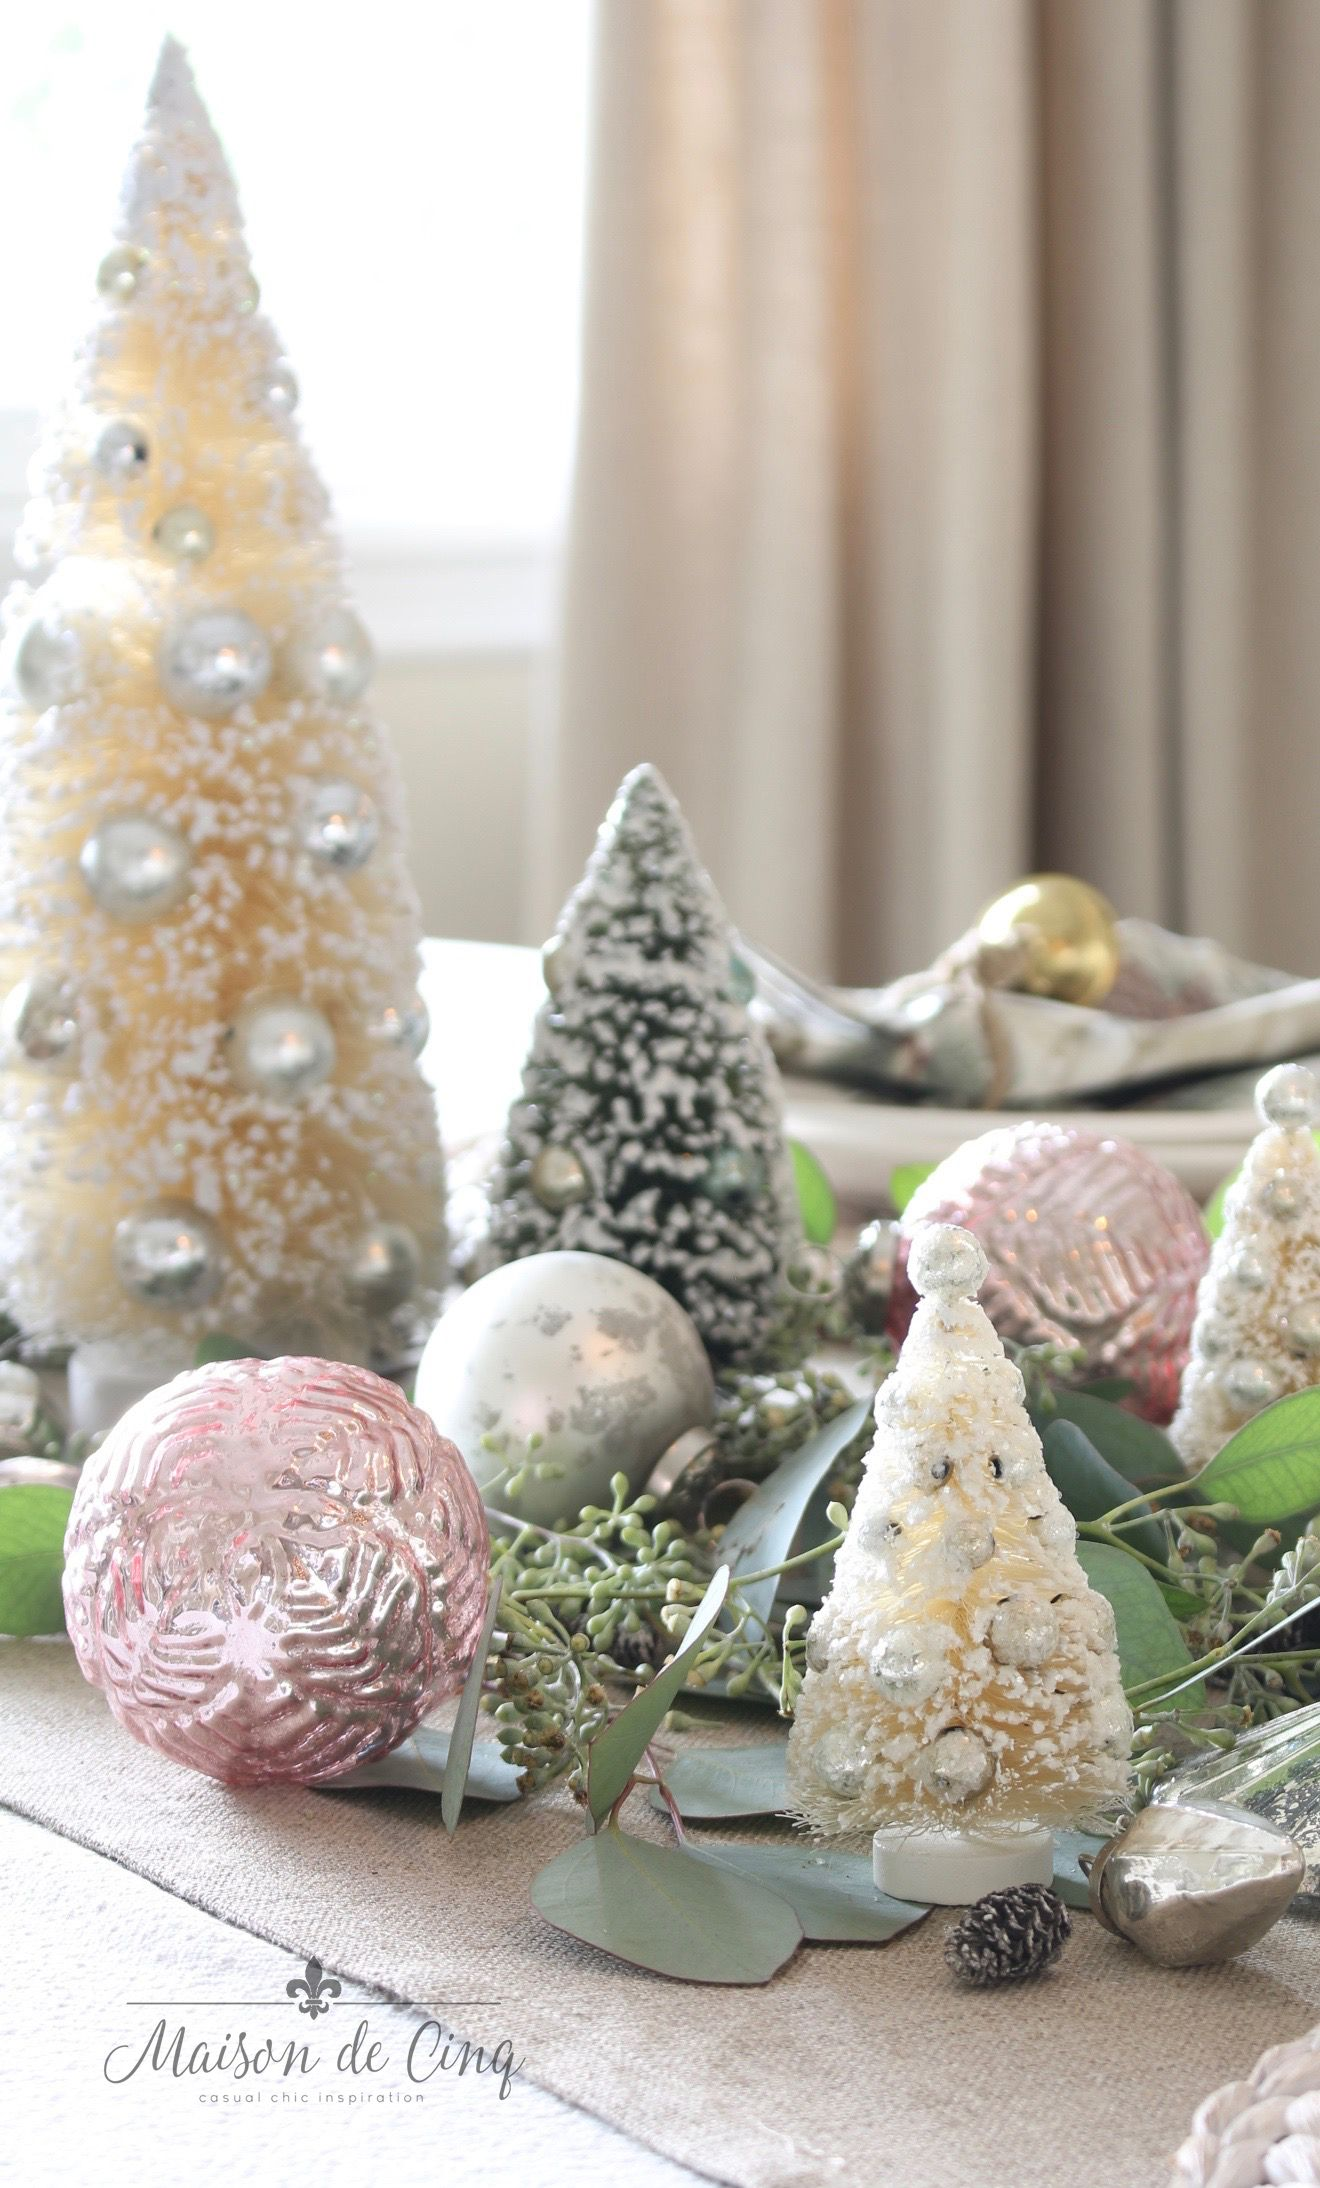 Soft Romantic Christmas Table Setting With Touches Of Blush Christmas Table Settings Romantic Christmas Pink Christmas Table